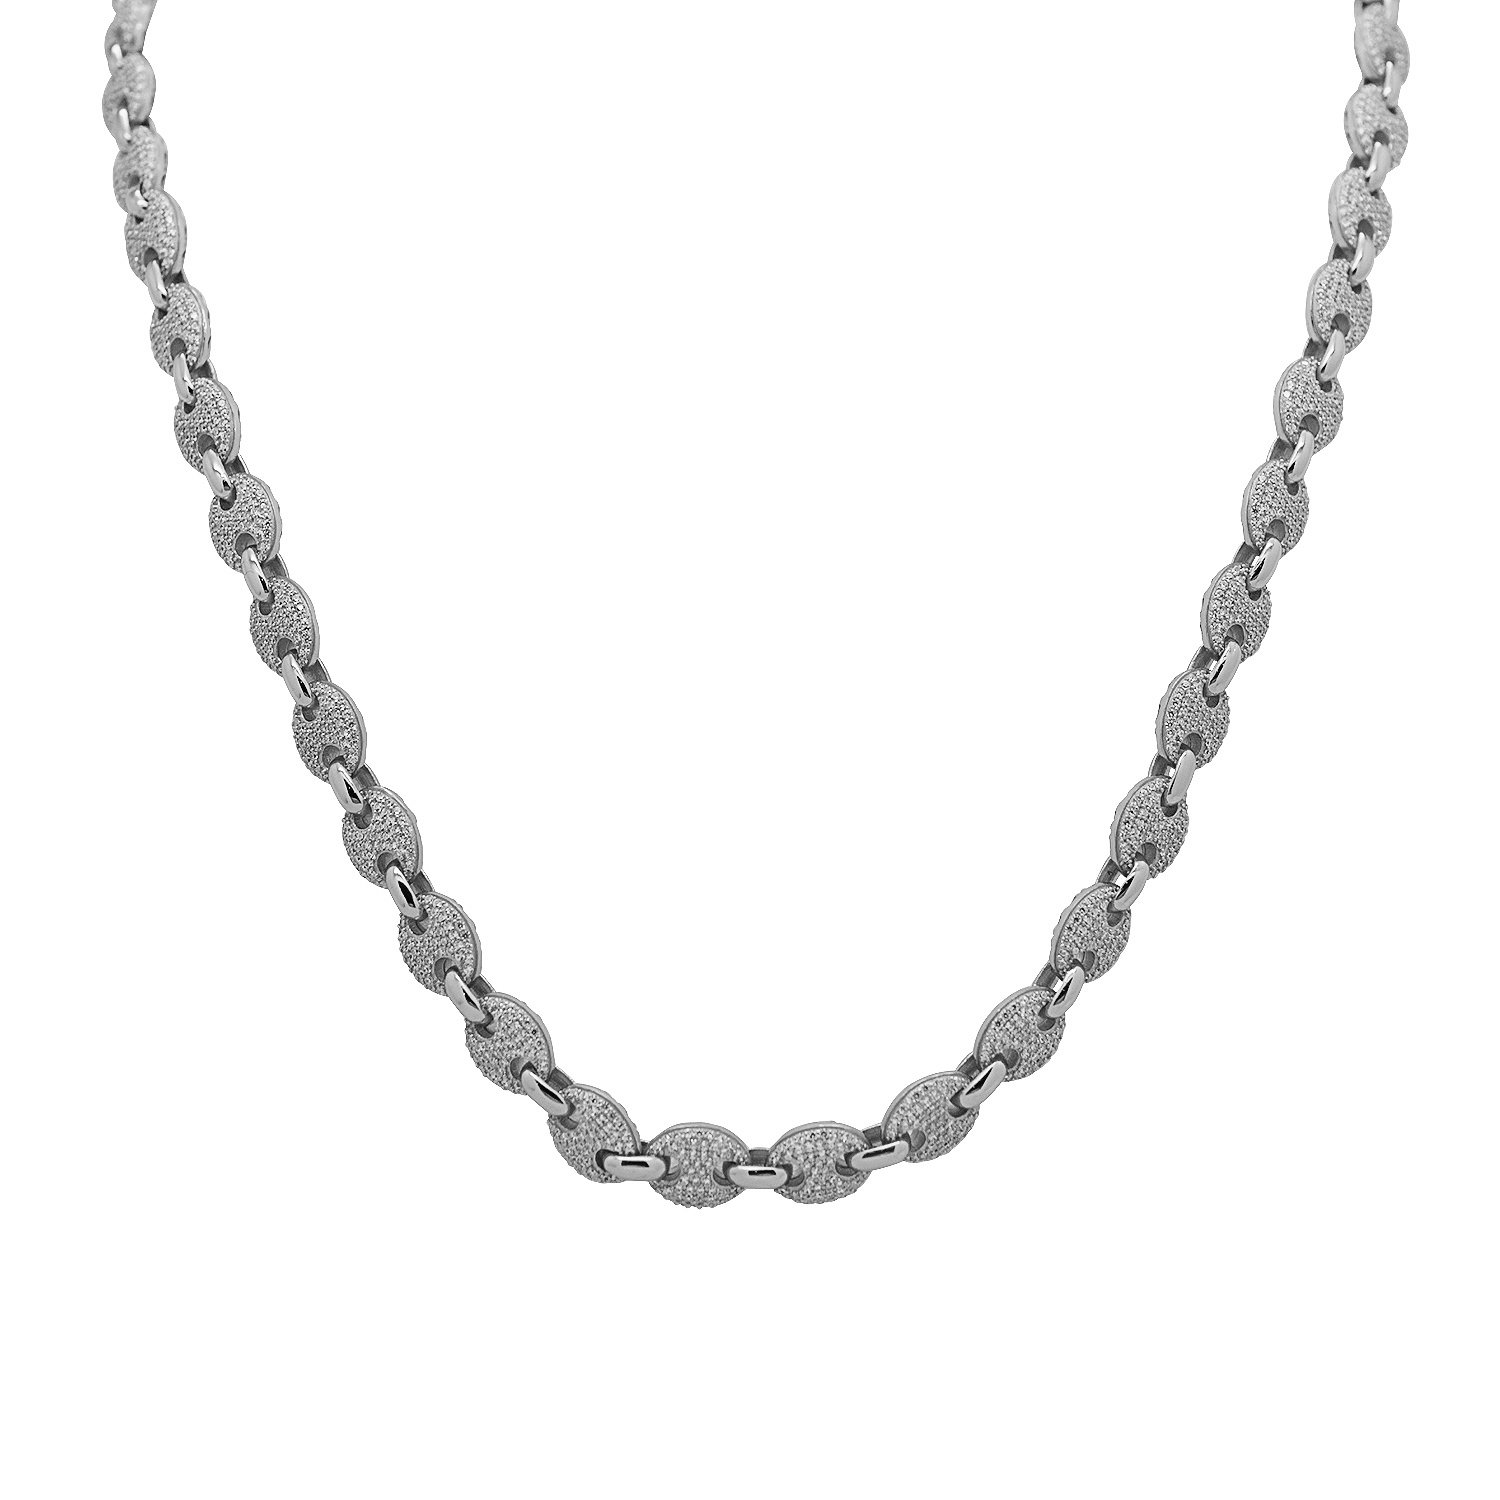 925 Sterling Silver White Gold-Tone Iced Out Hip Hop Bling Cubic Zirconia Gucci-Mariner Bead Link Necklace Chain 30''